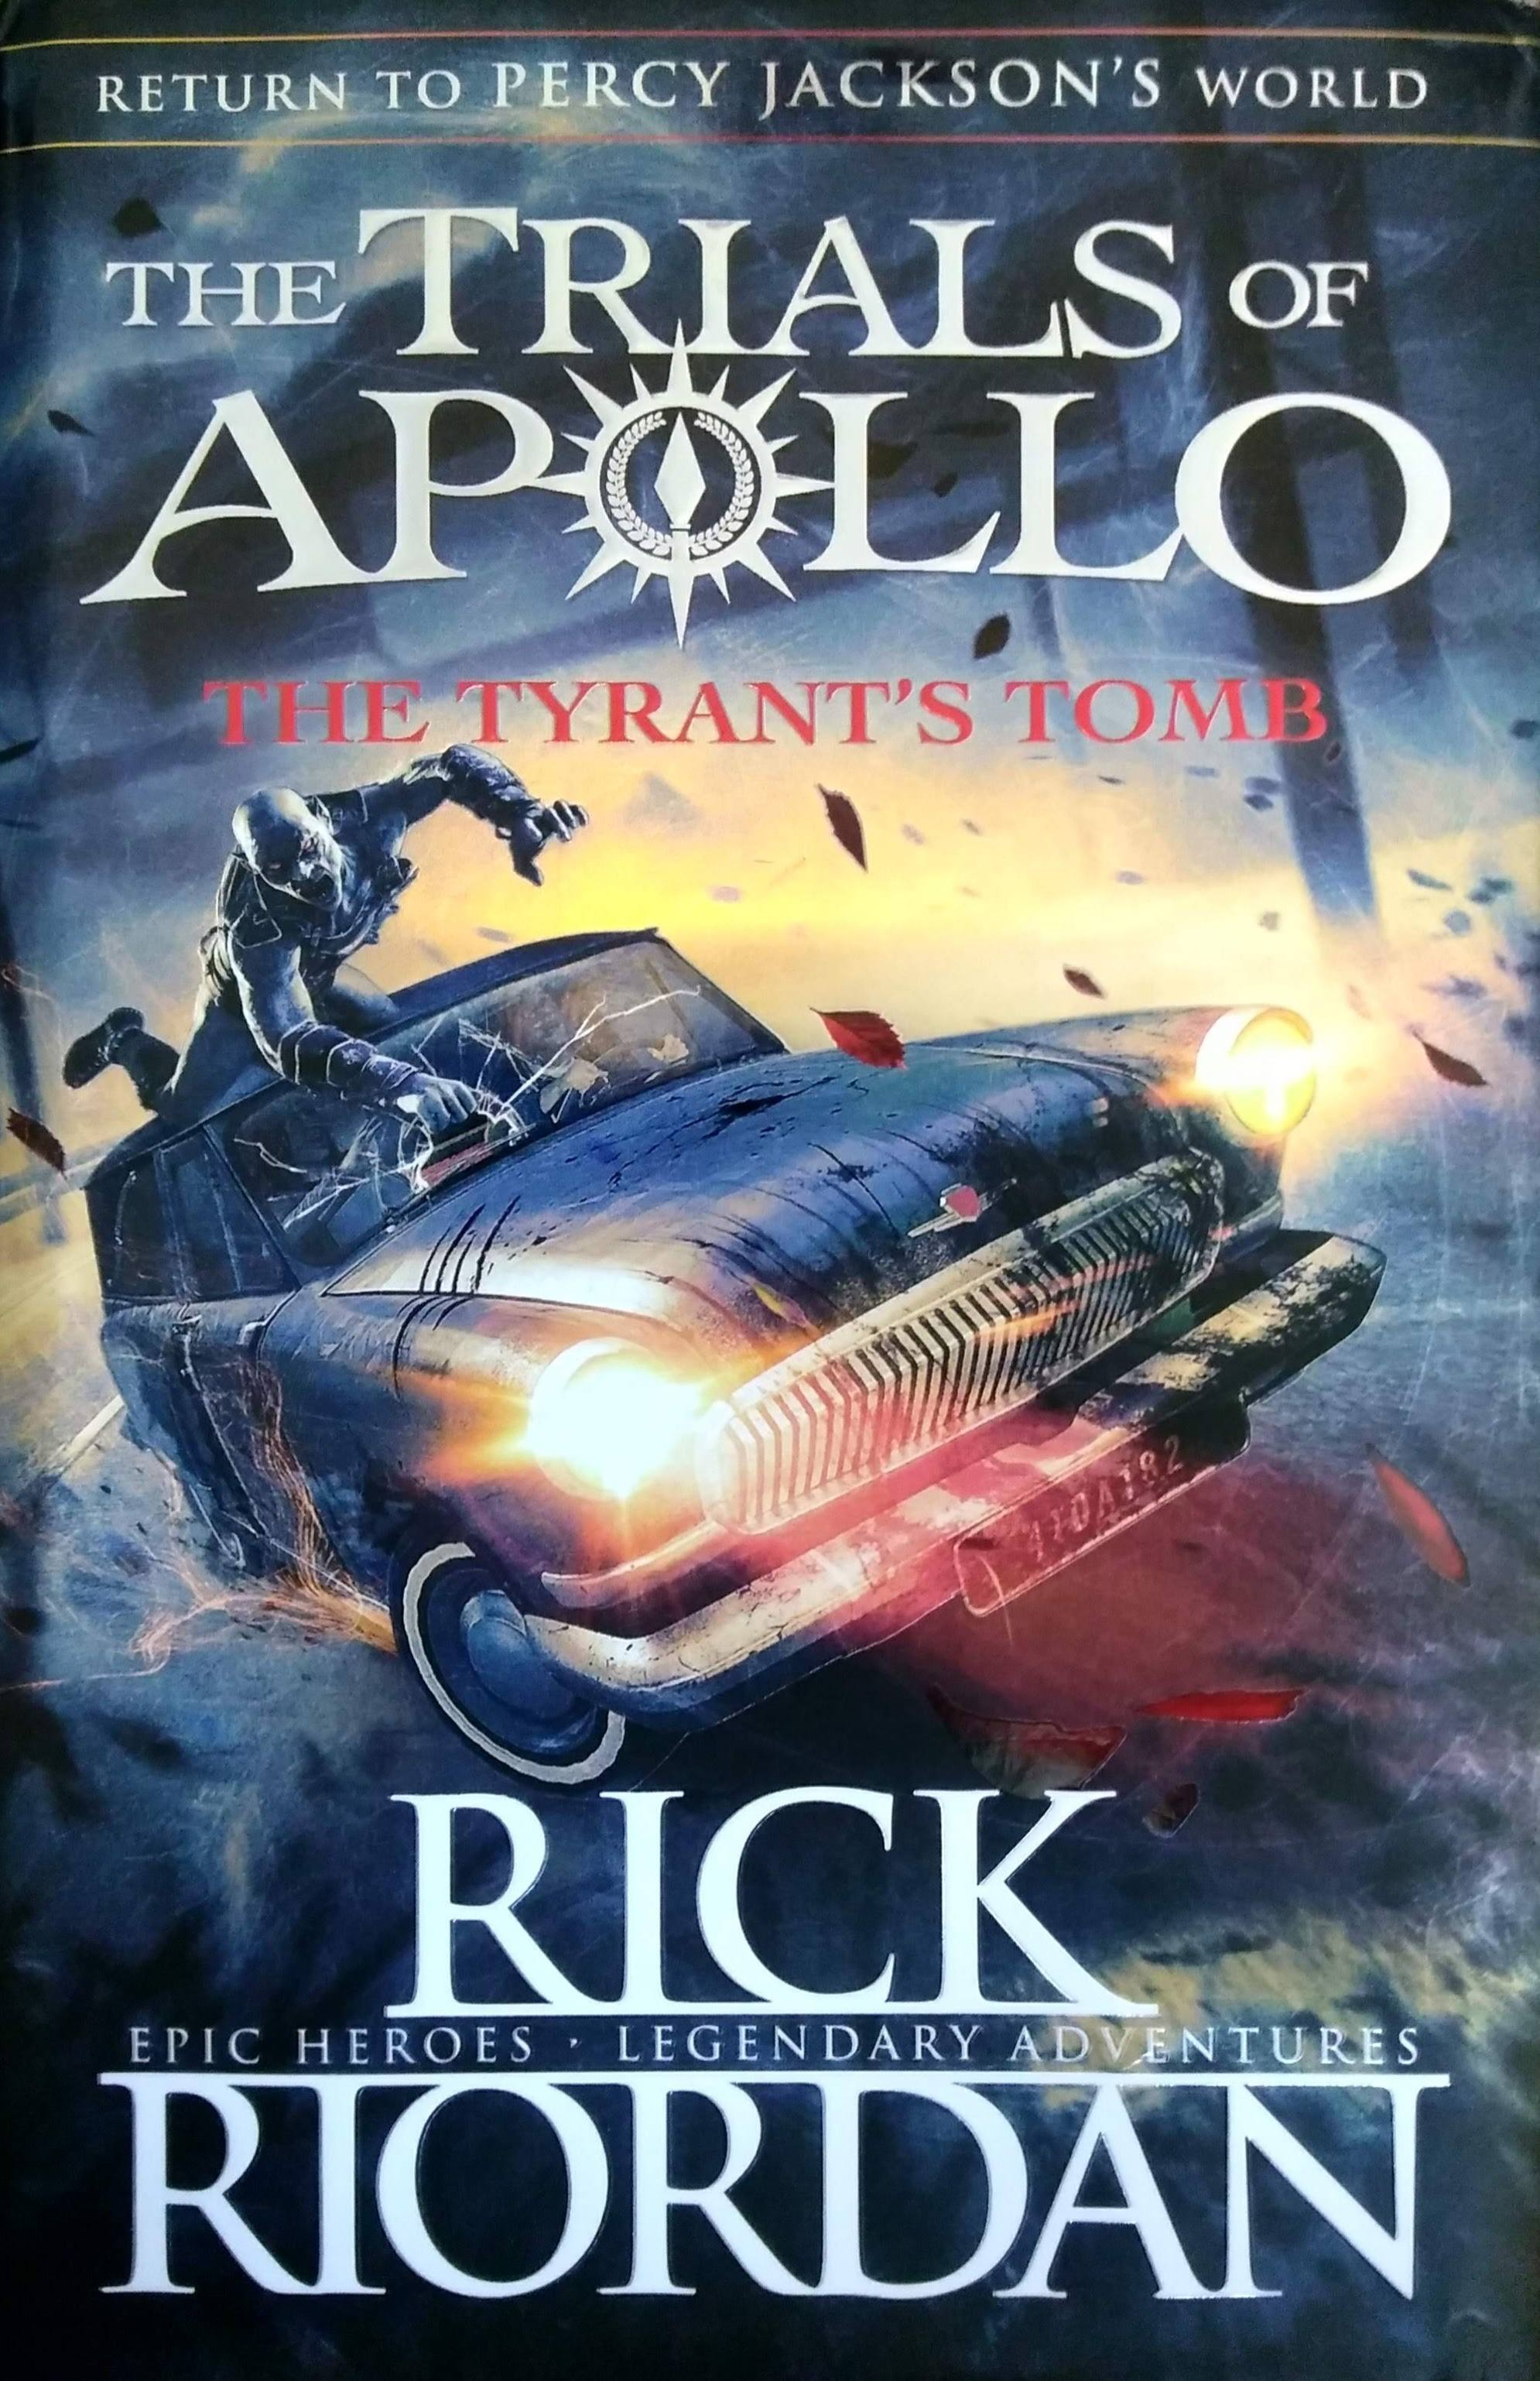 Rick Riordan Trials of Apollo - Cover of latest Rick Riordan book - The Trials of Apollo: The Tyrant's Tomb - feature image for full guide to Rick Riordan series in order